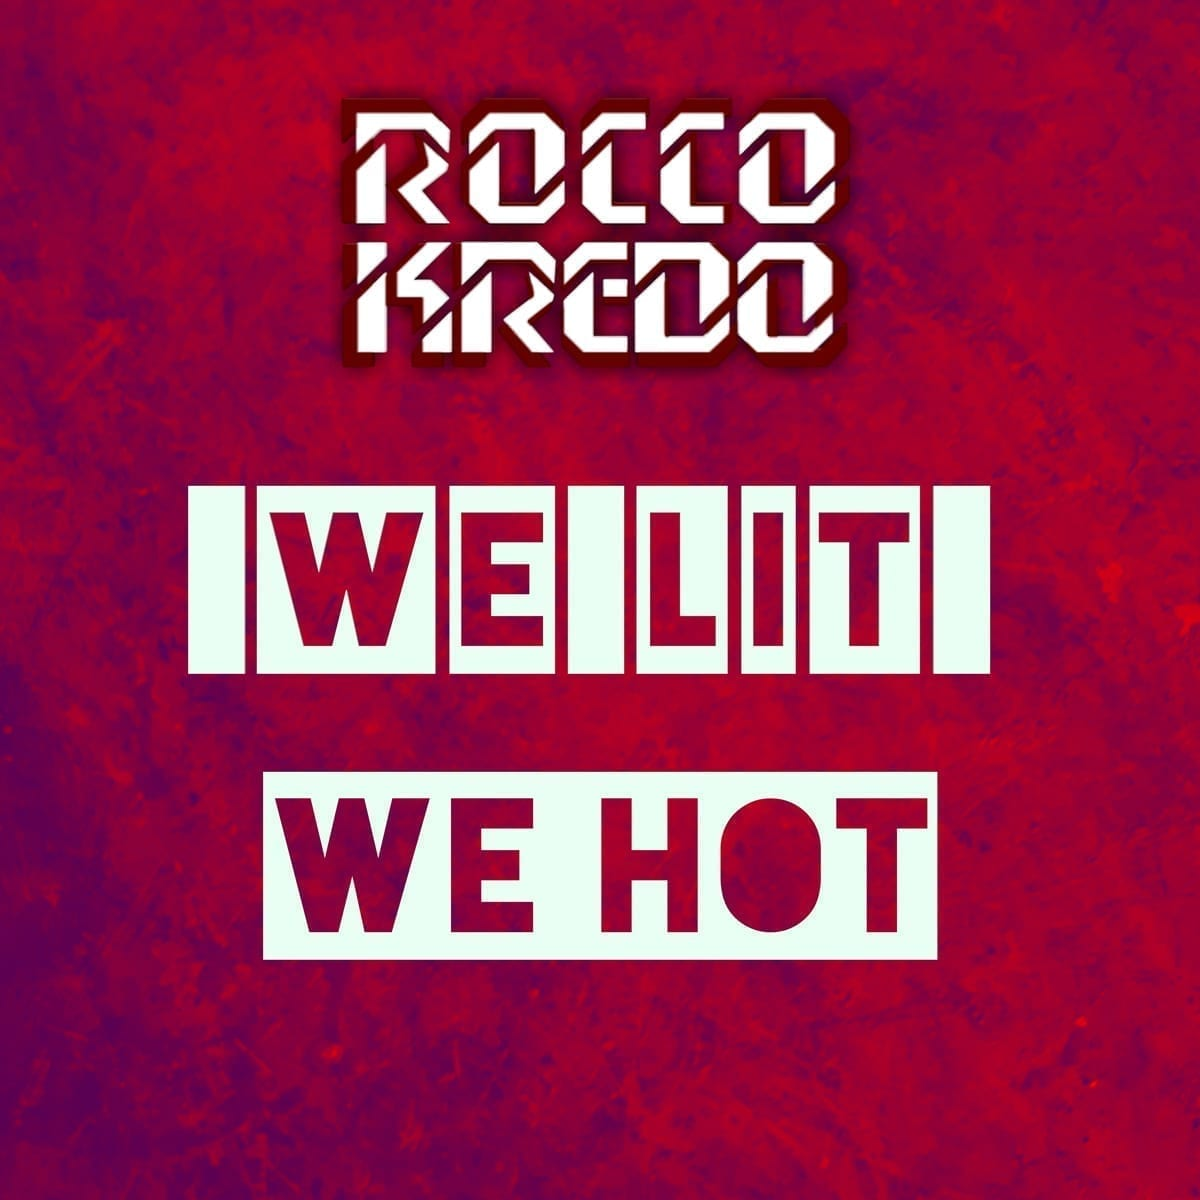 """Rocco Kredo gets to the public with a new tune titled """"We Lit We Hot"""""""